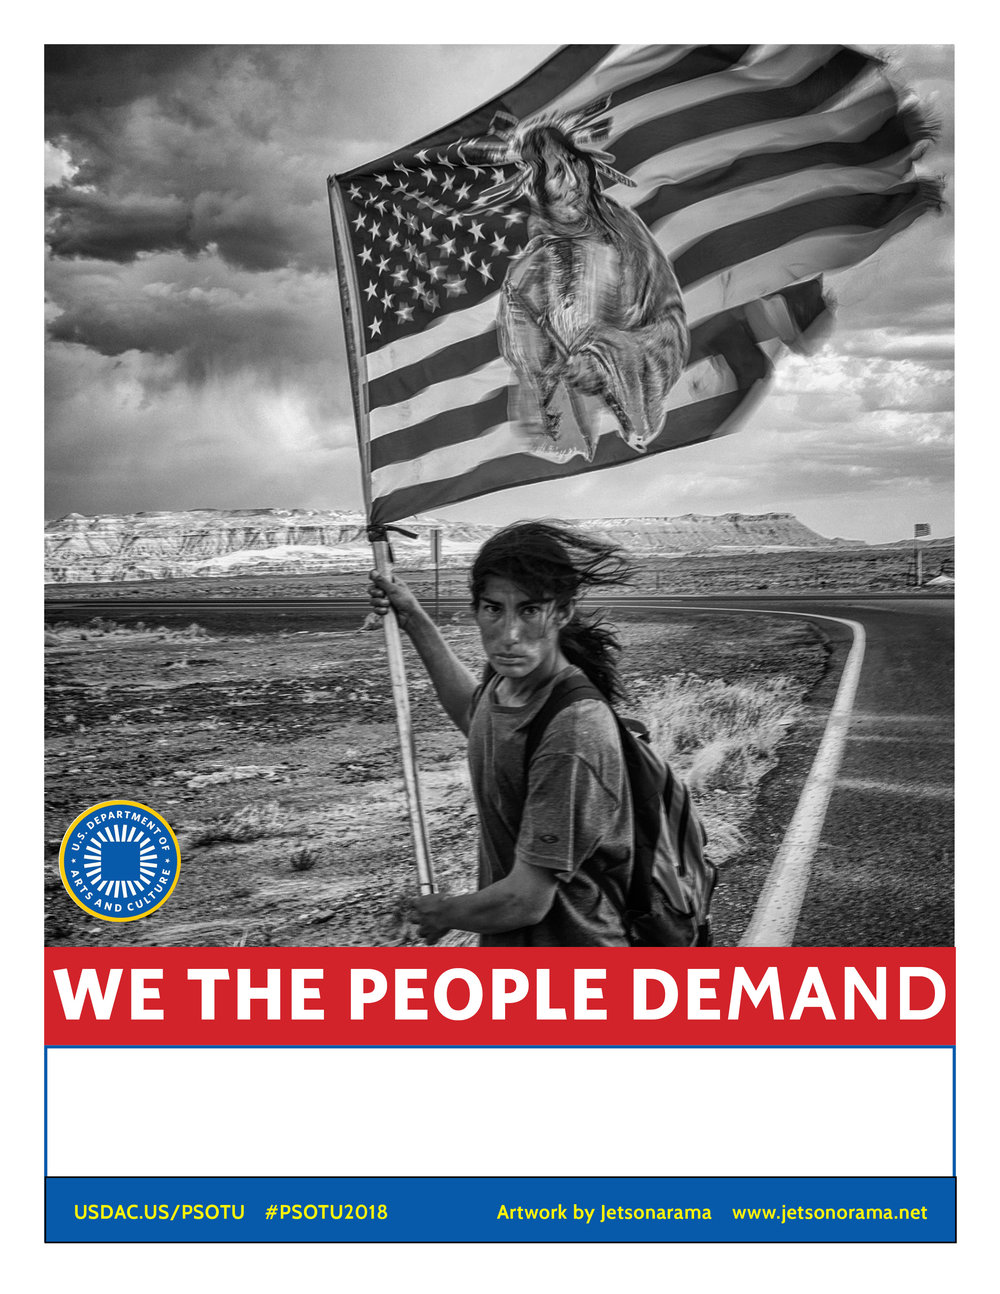 We the people jetsonarama 11-7-17.jpg